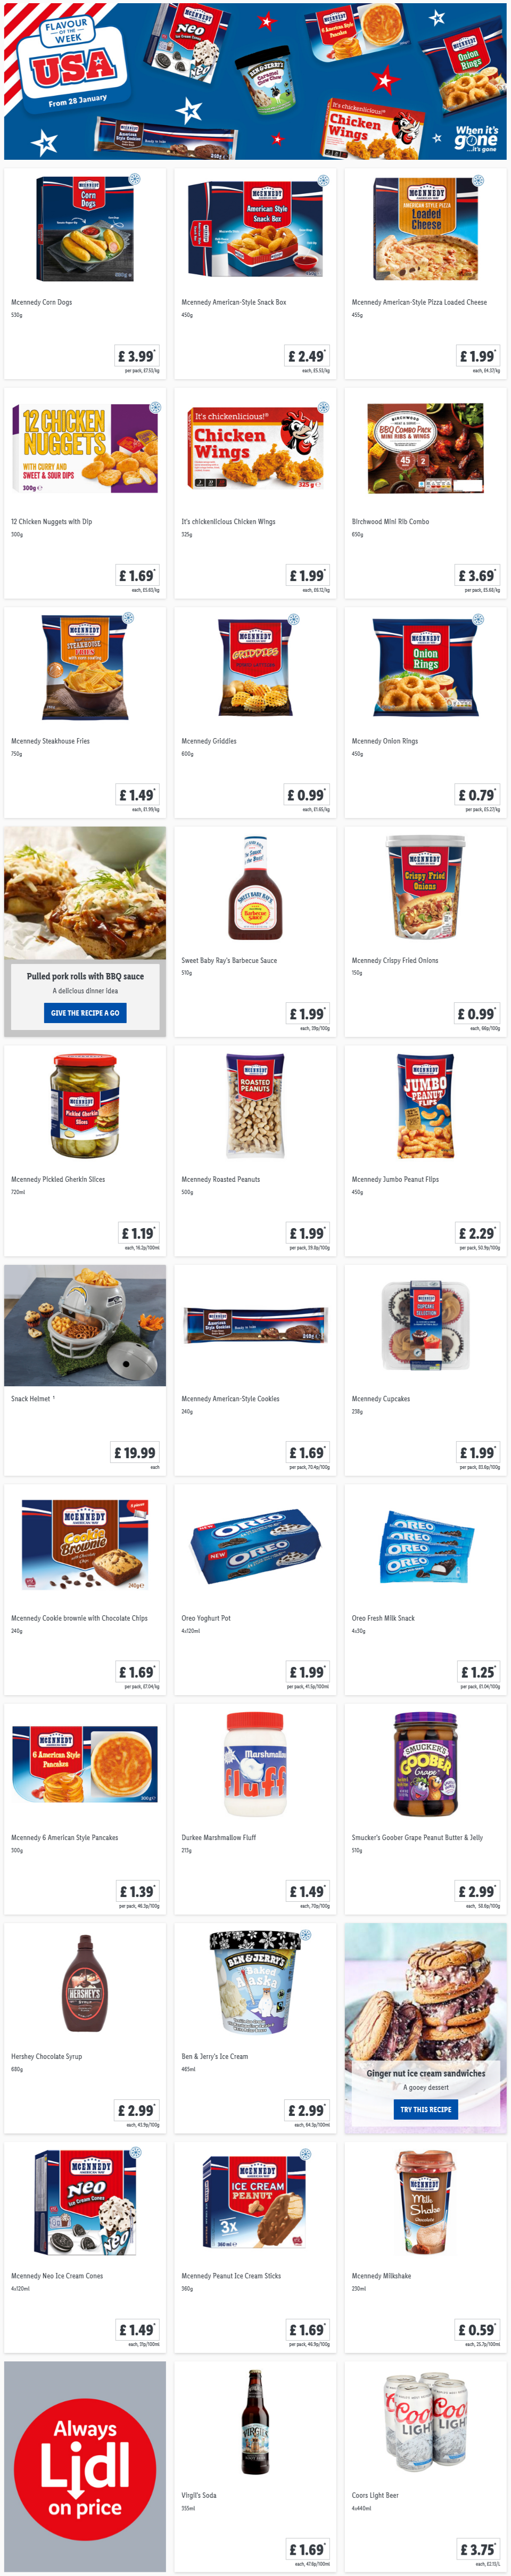 LiDL Flavour of The Week USA From 28th January 2021 LIDL Offers this Thursday